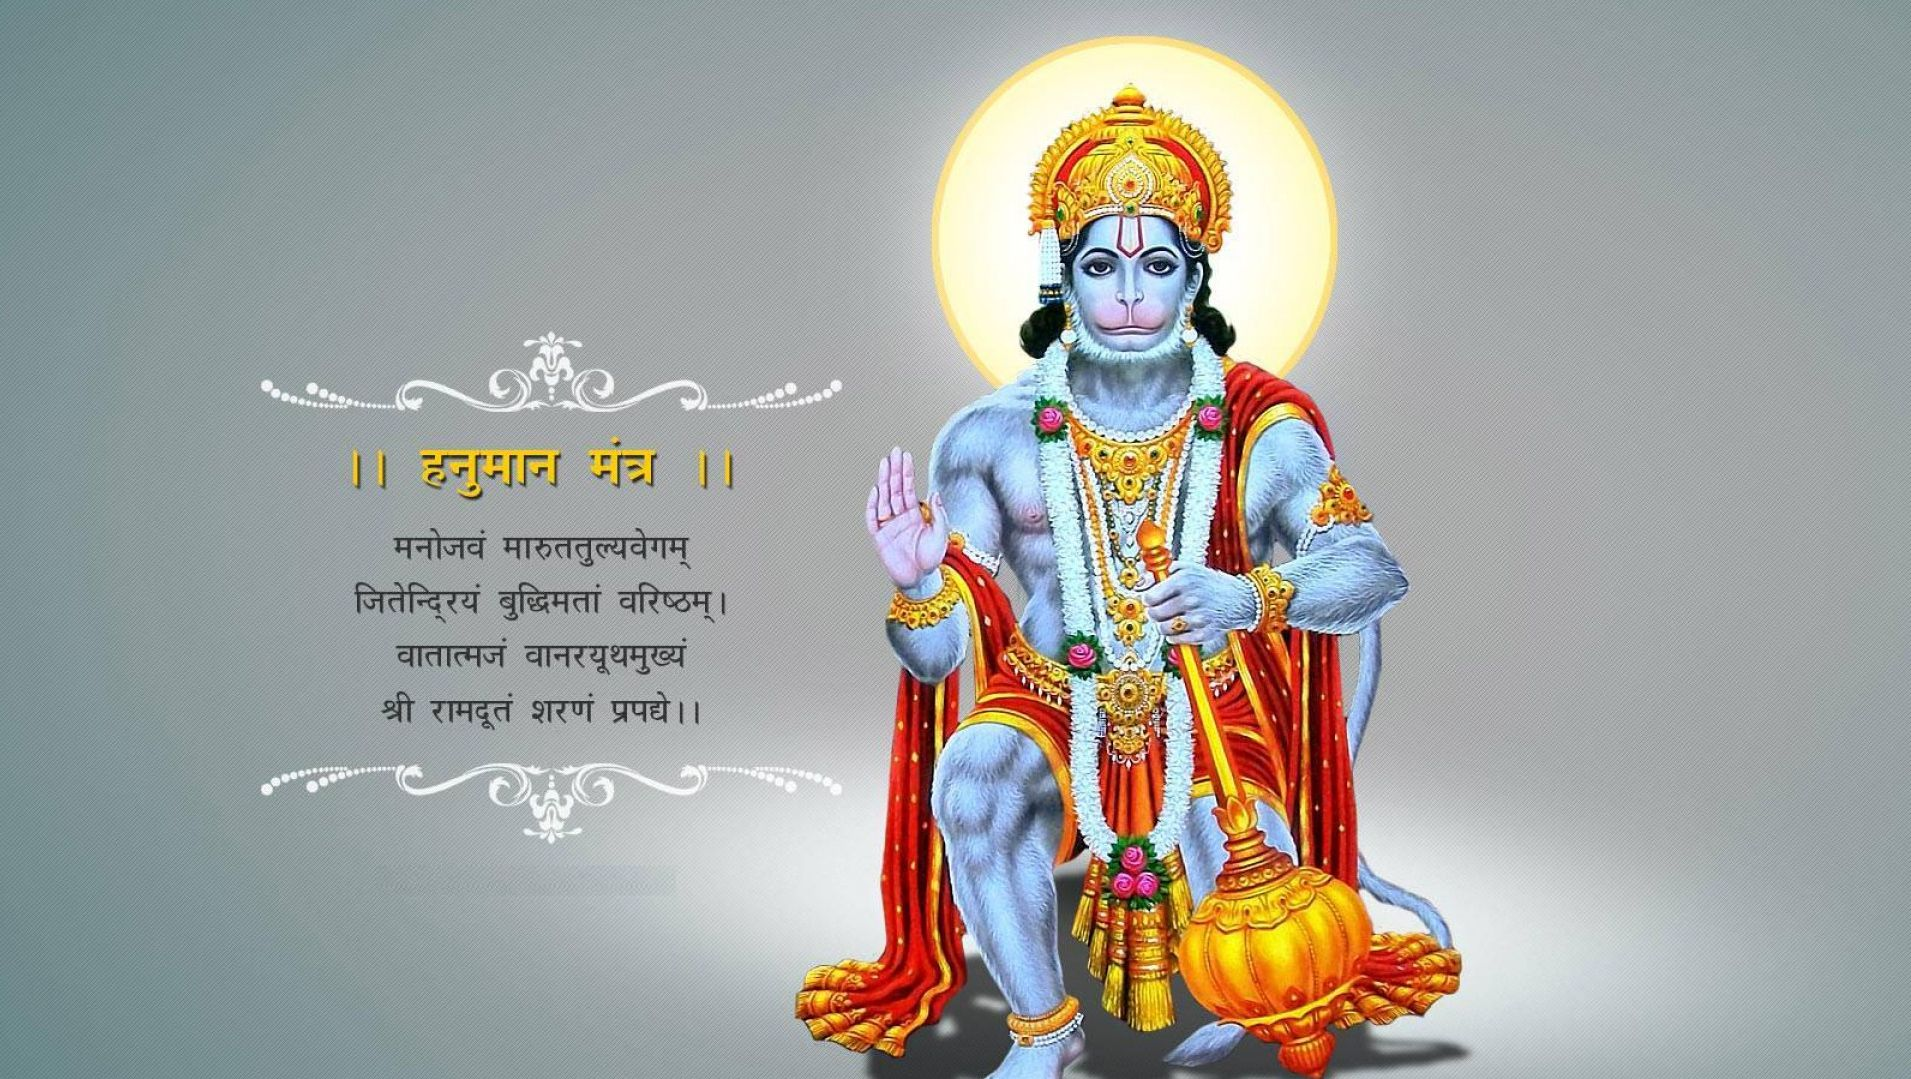 Huge Hanuman Wallpapers with Mantra